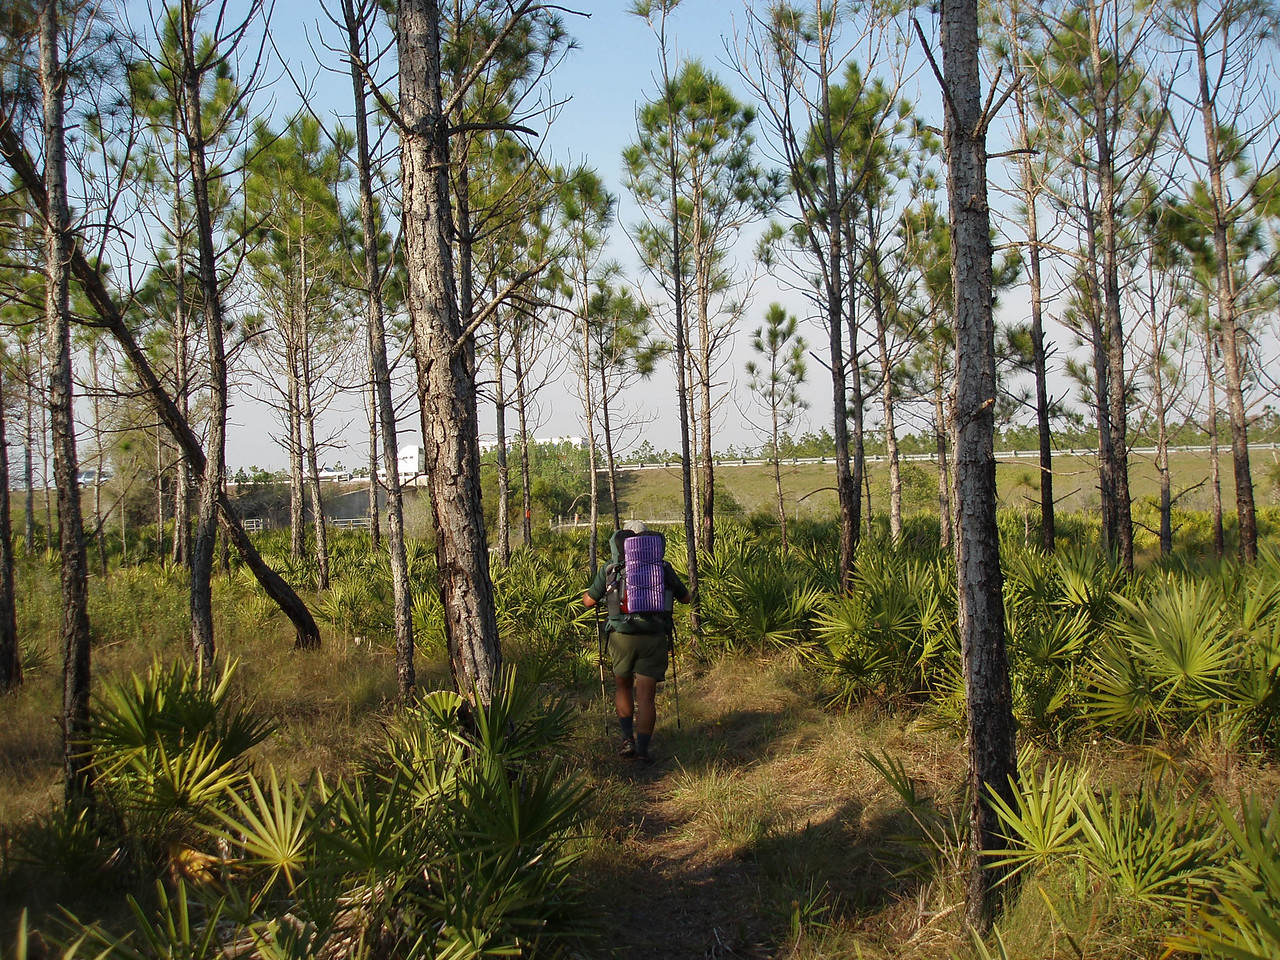 Hiking towards Florida's Turnpike<br /> PHOTO CREDIT: Robert Coveney / Florida Trail Association